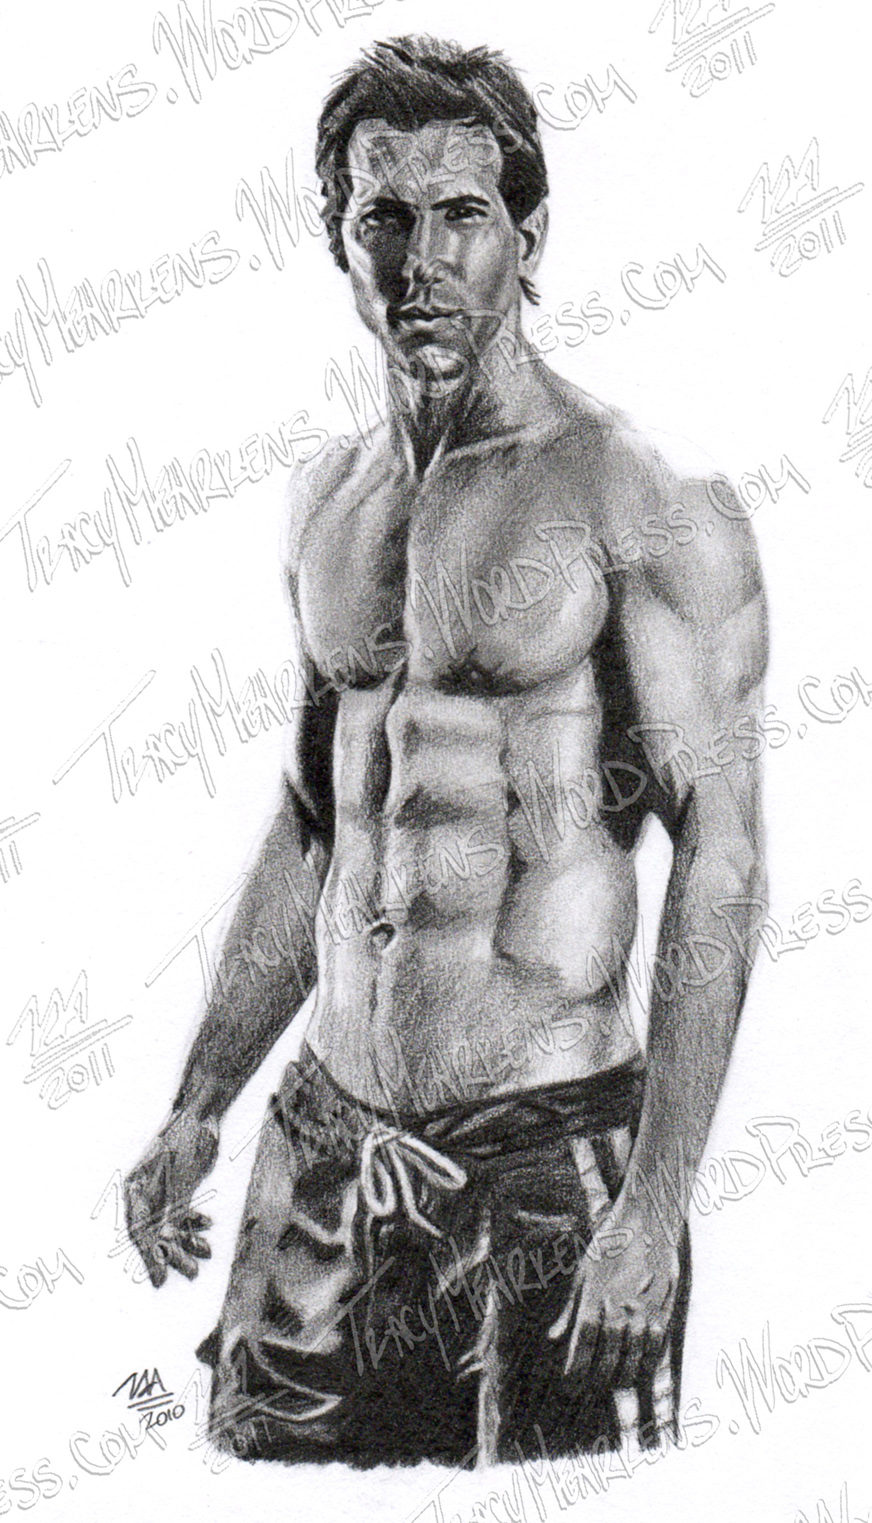 Ryan Reynolds. Graphite on Paper. 4.5x8 in. 2010.